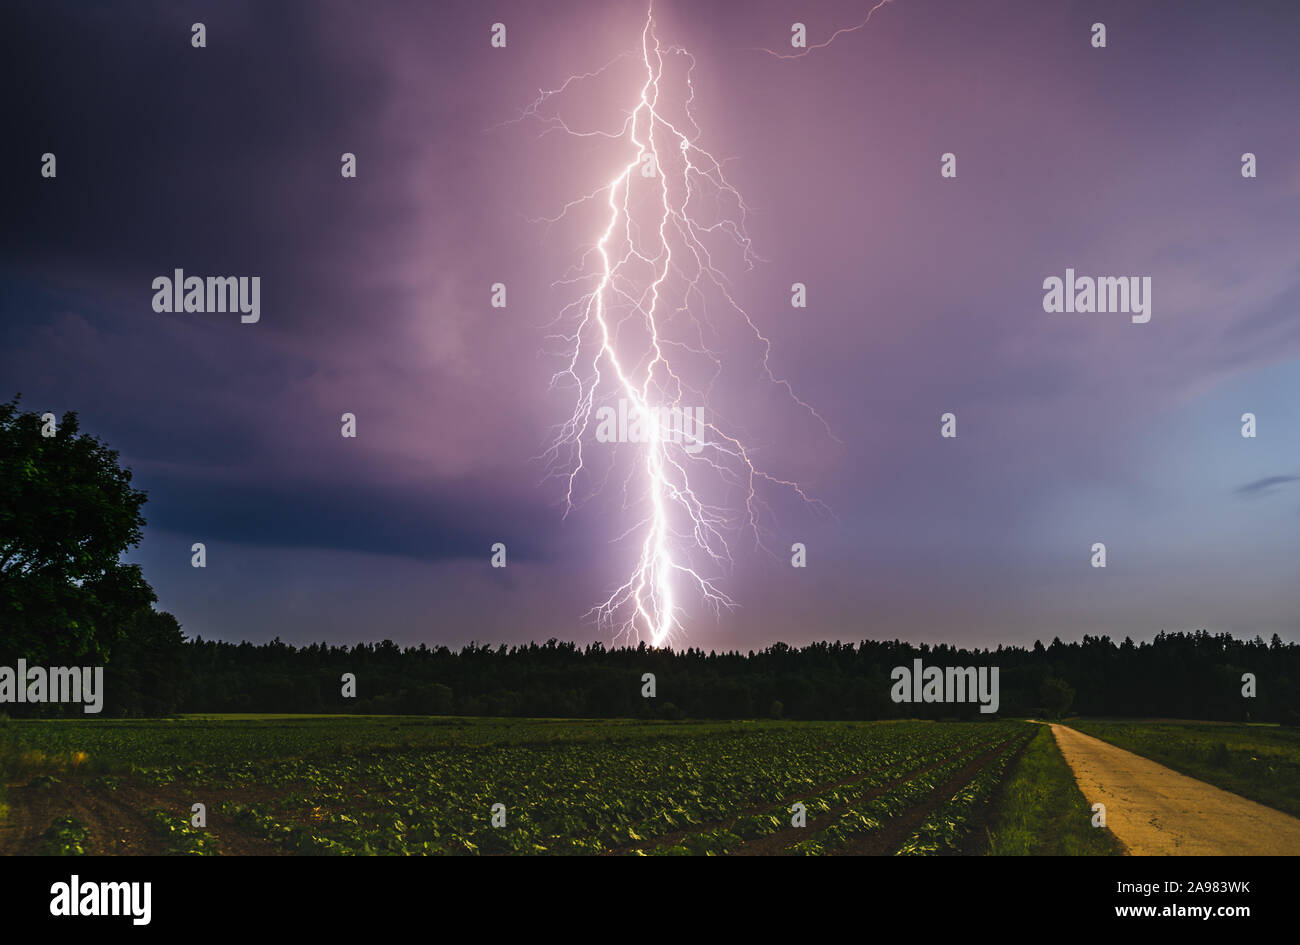 Dramatic lightning bolt at night over rural area. Agriculture fields. Stock Photo